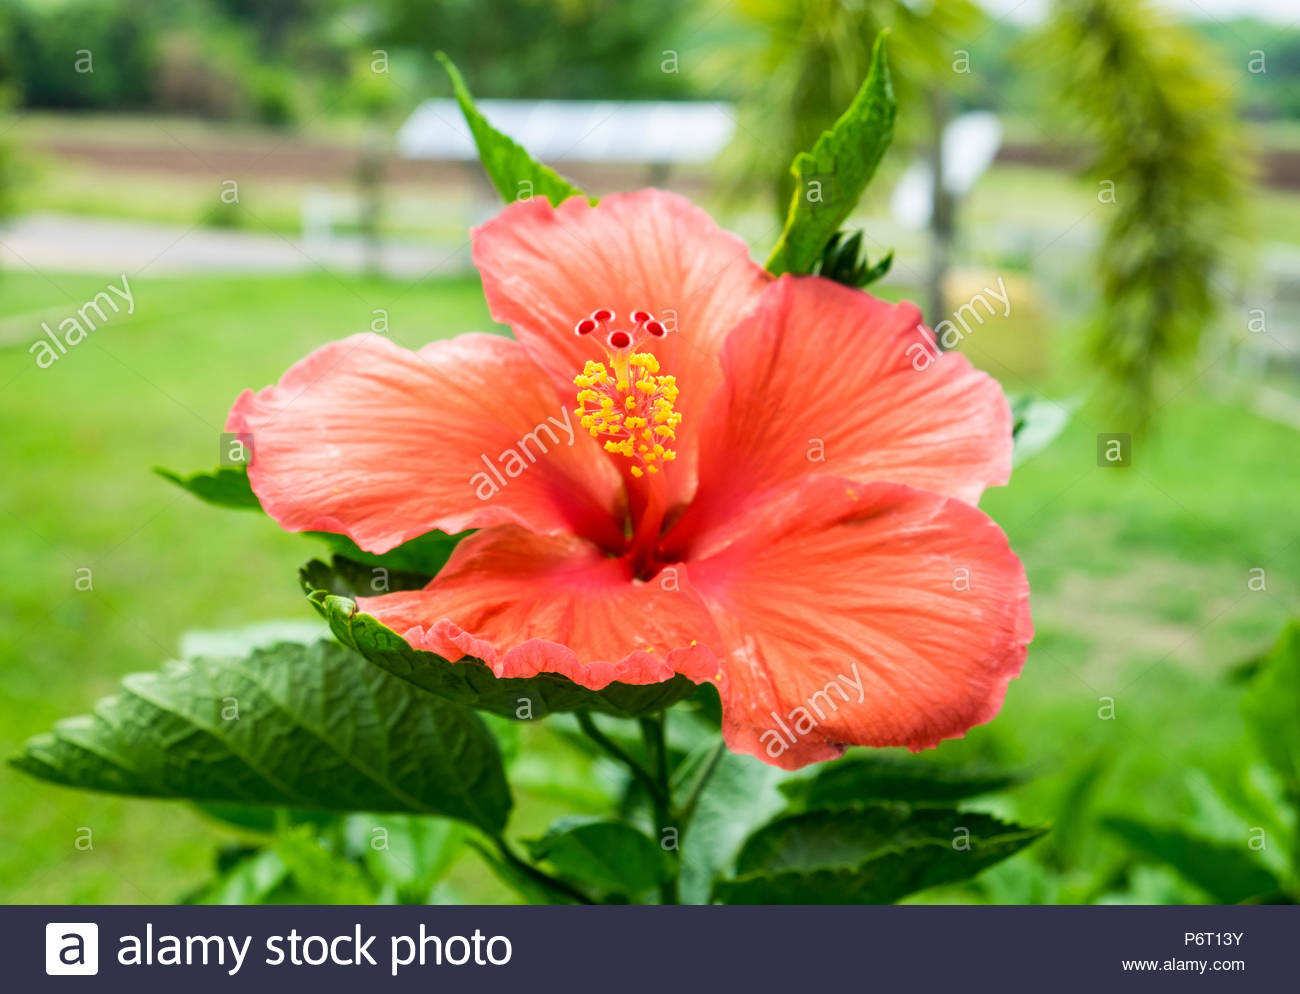 Shoe flower hibiscus stock photos shoe flower hibiscus stock red orange hibiscus china rose hawaiian flower blossom colorful ornamental stock image izmirmasajfo